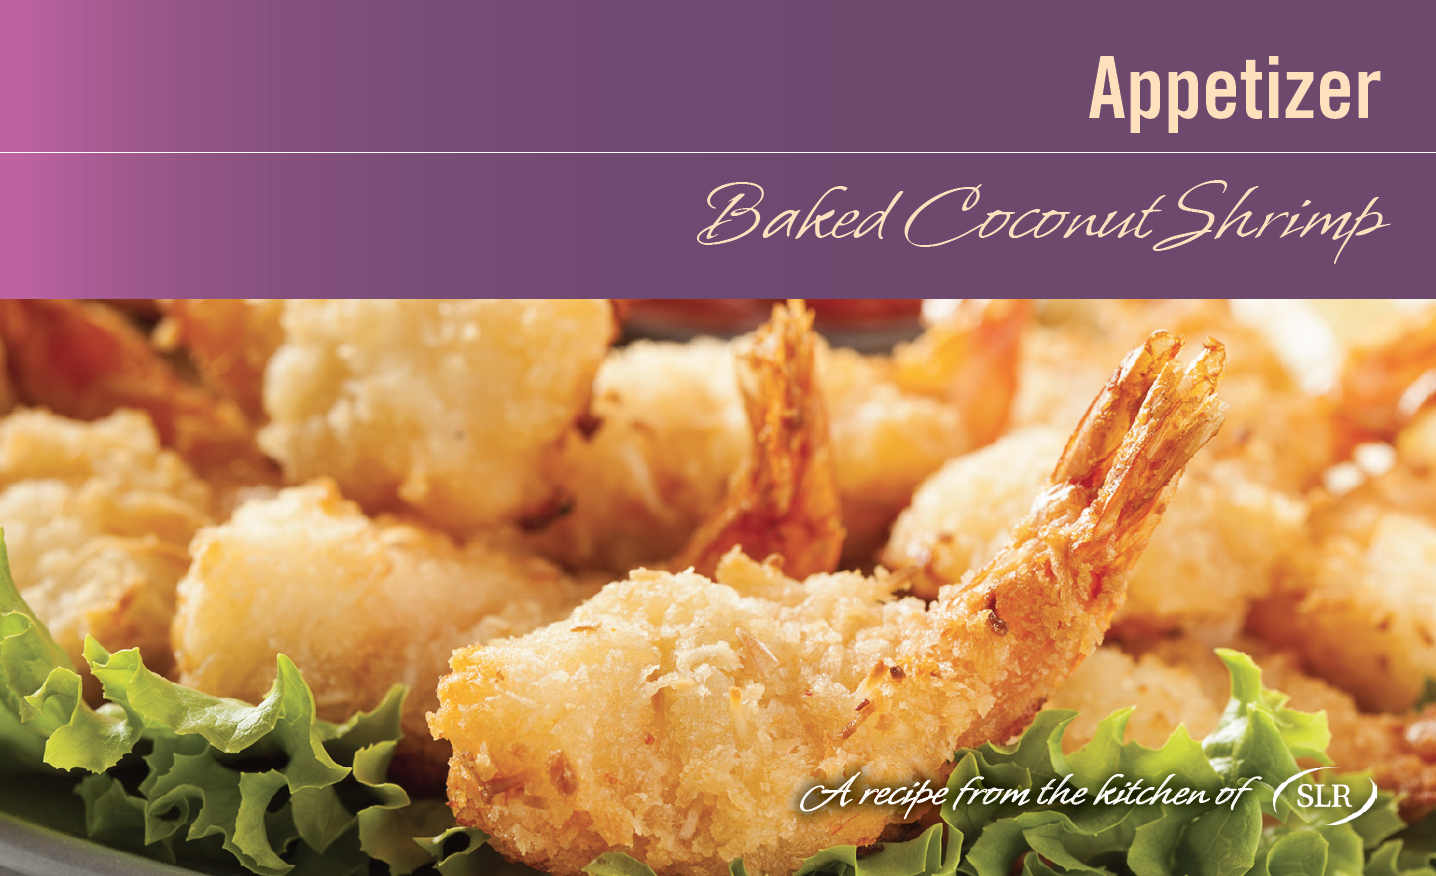 Baked Coconut Shrimp recipe card